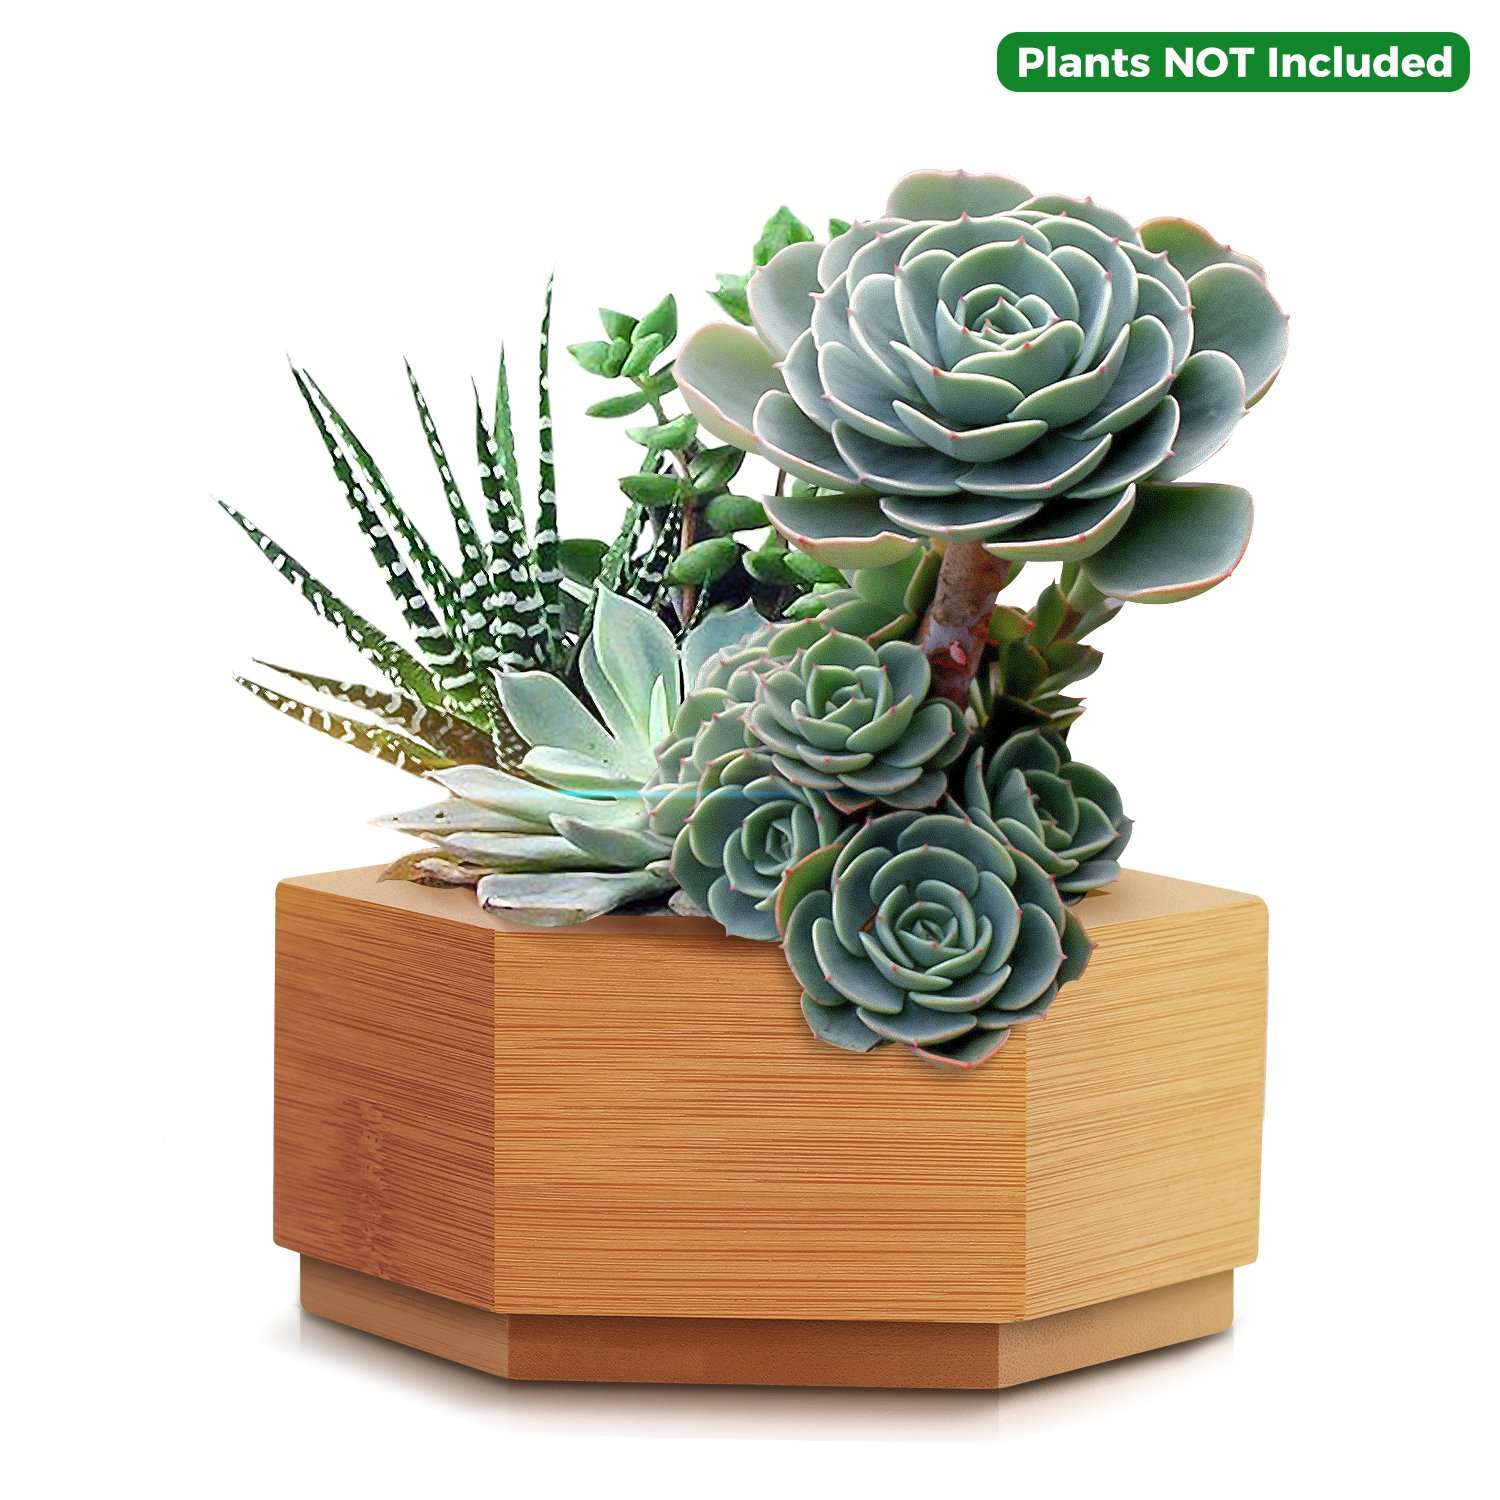 CUUCOR Modern Bamboo Succulent Planter Pot,Indoor Plant Holder for Succulent Plants/Mini Cactus/Artificial Flowers/Air Plant by CUUCOR